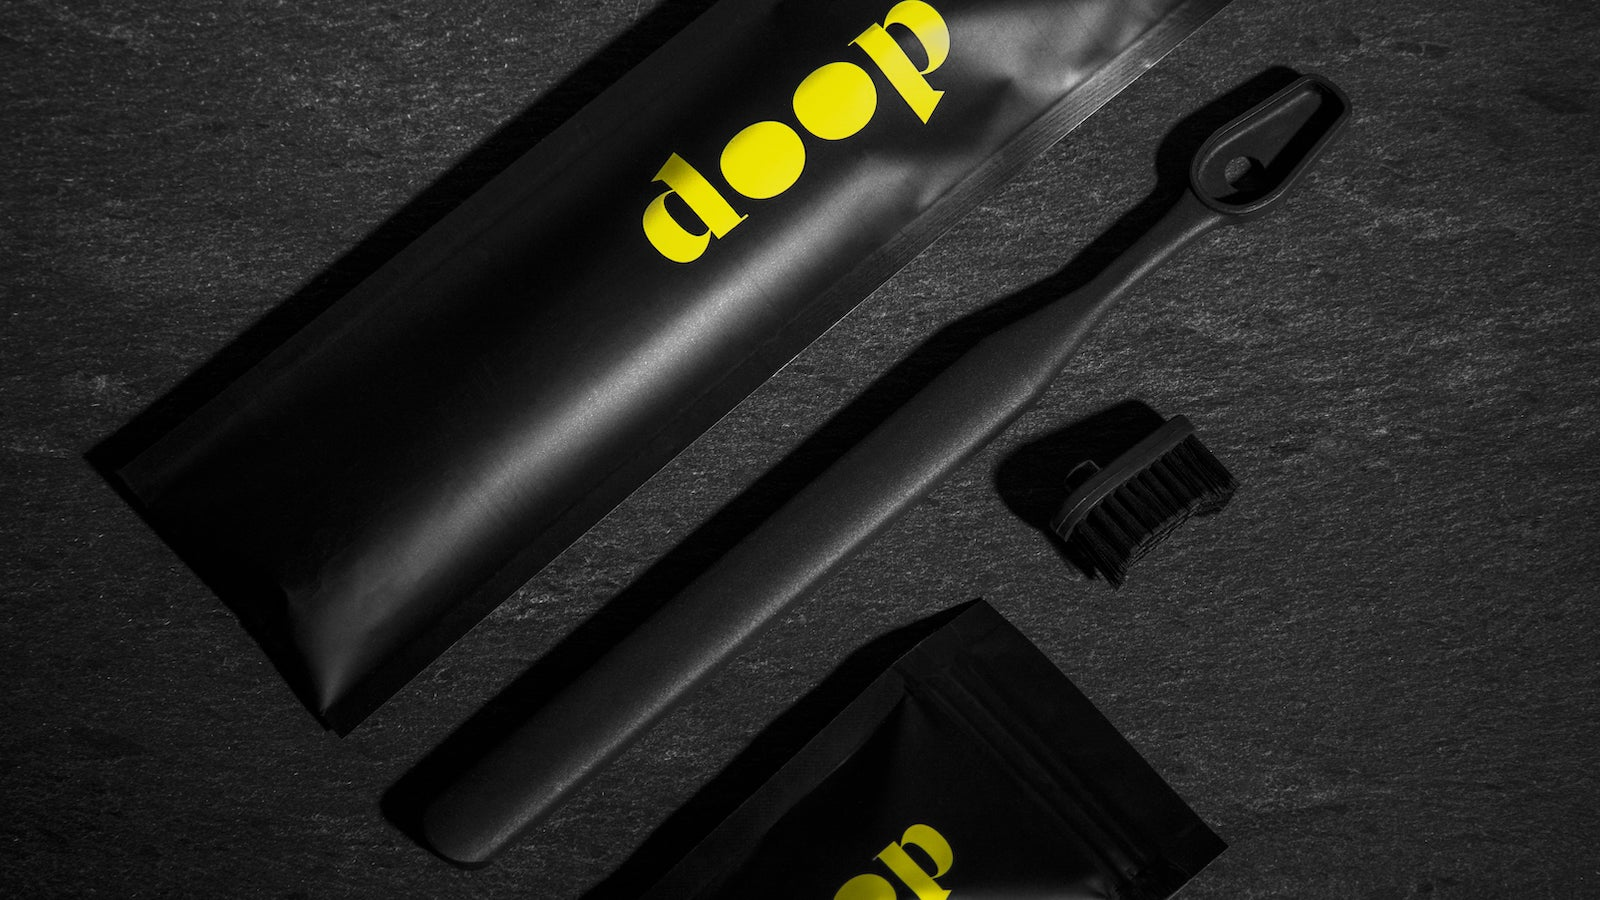 Doop head-removable & washable toothbrush is both recycled & recyclable for sustainability